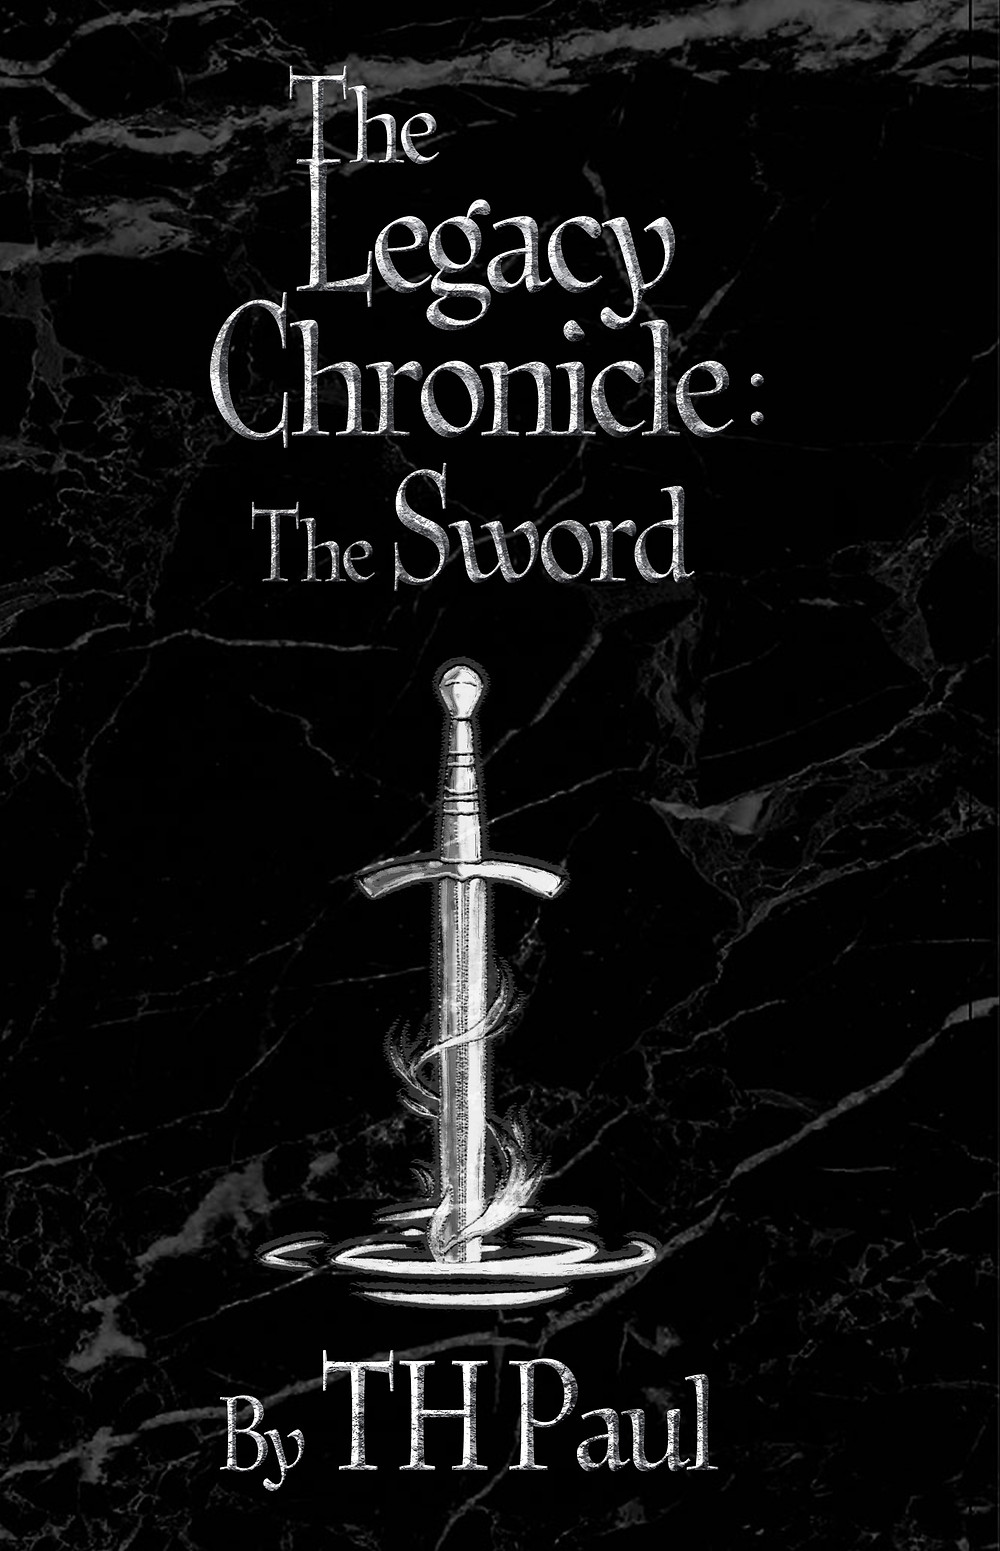 The Legacy Chronicle: The Sword